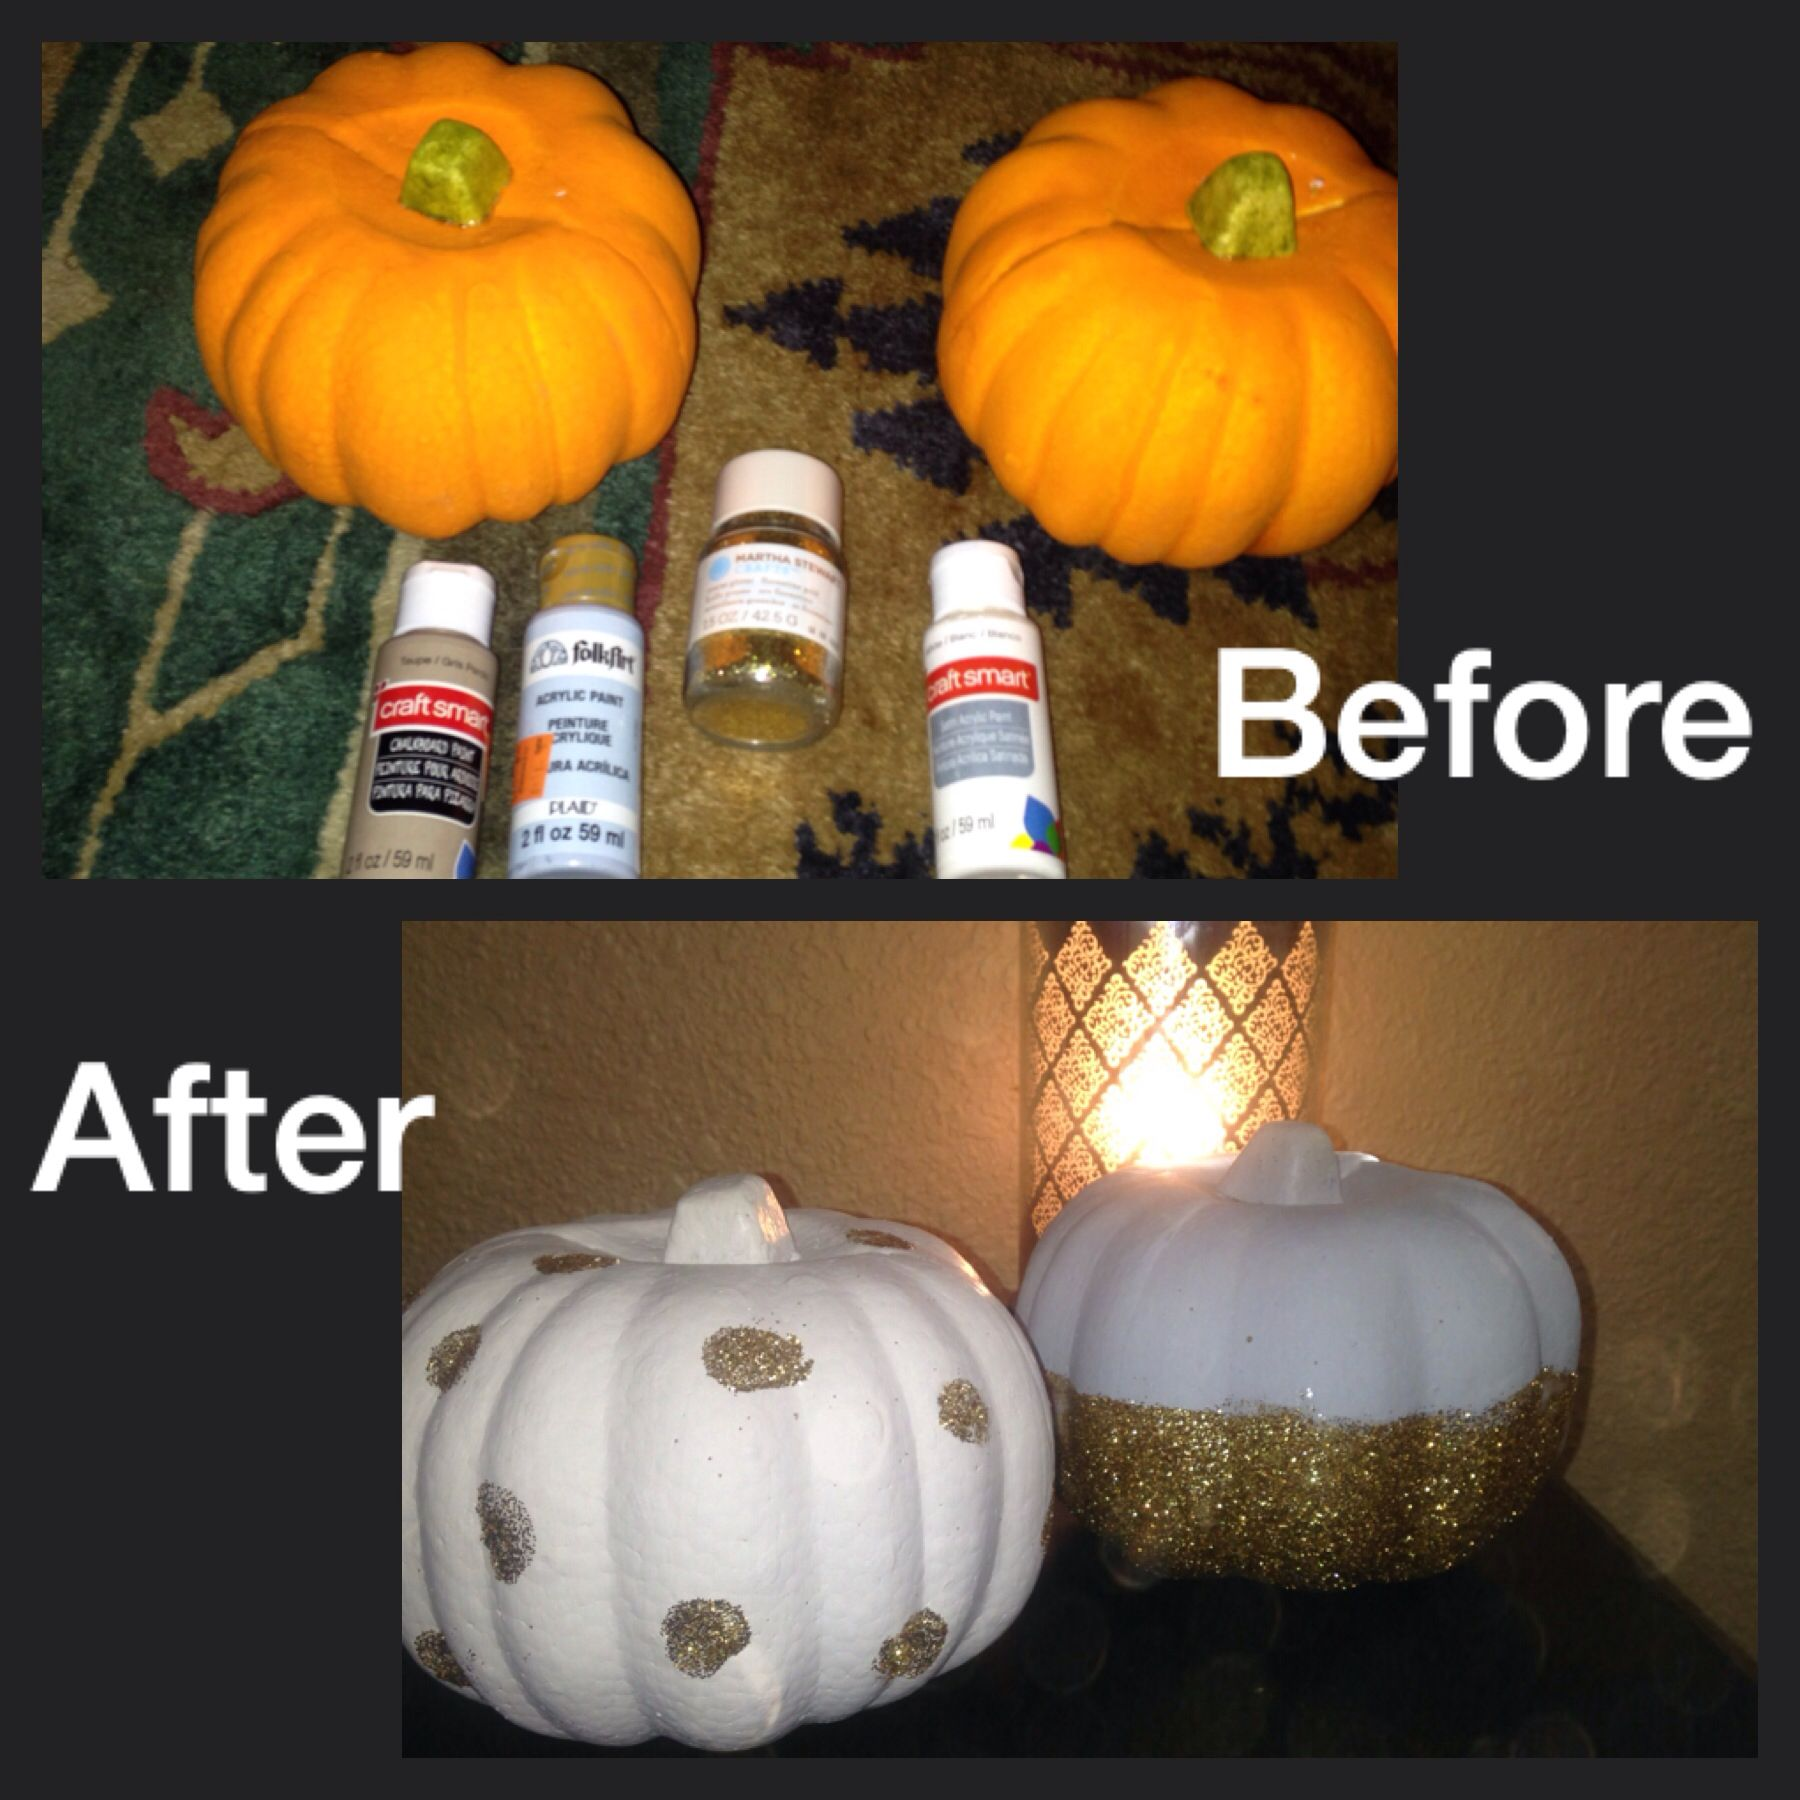 Glitter glam pumpkins from dollar store . Use acrylic paints and glitter . After glitter drys apply Modge podge over the top to seal. Total cost $6